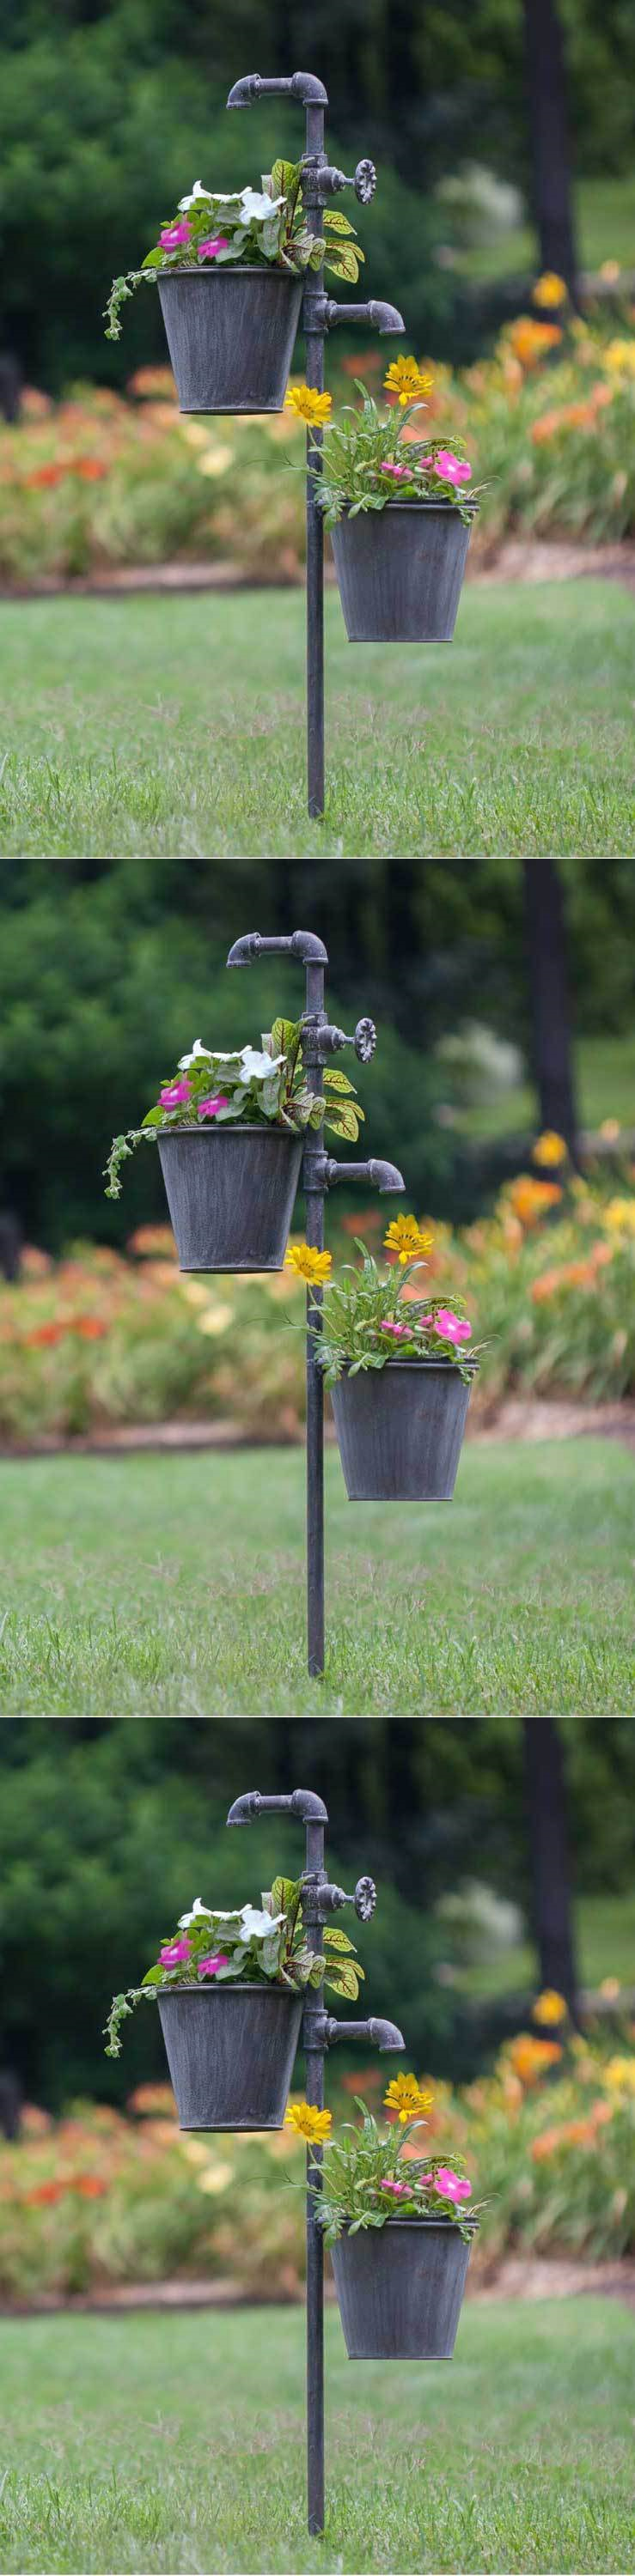 Plant Hooks and Hangers 134671: Flower Garden Stakes Metal ...